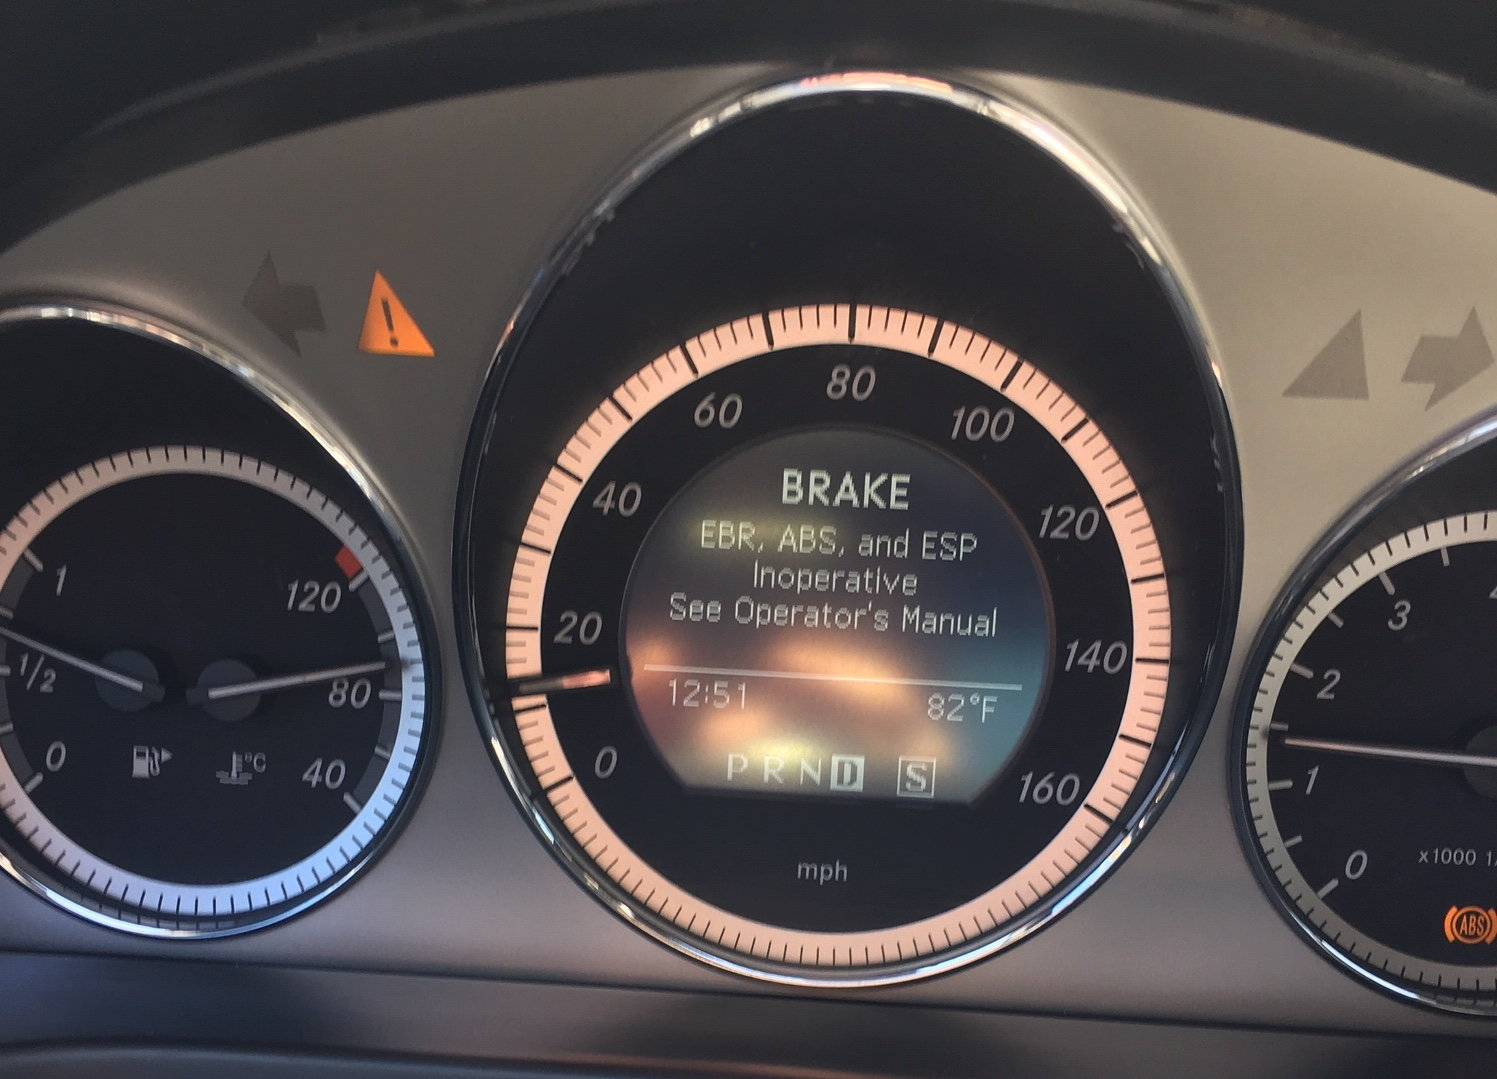 Power Steering Malfunction, Brake (EBR, ABS, ESP Inoperative